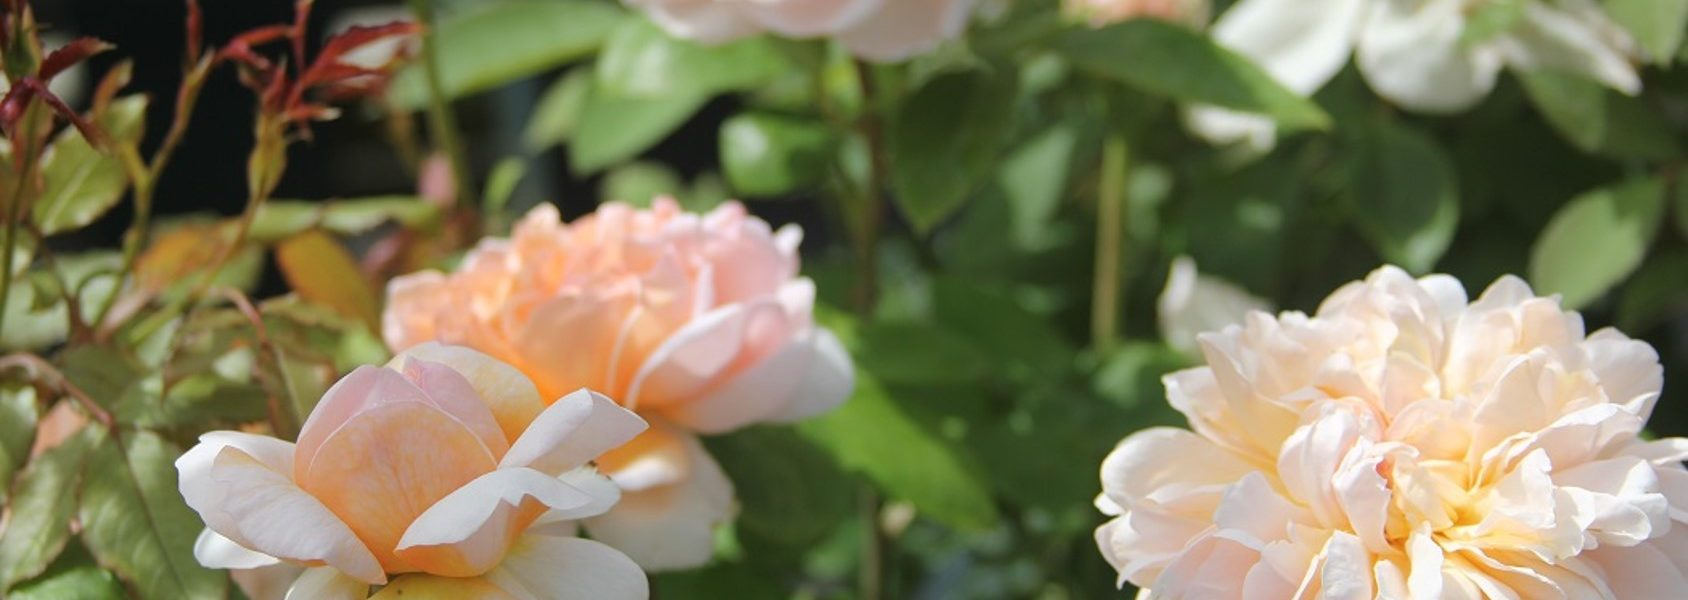 the lady gardener rose review the right roses score best top garden store david austin english roses rose products rose rating the right leap rose food fertilizer